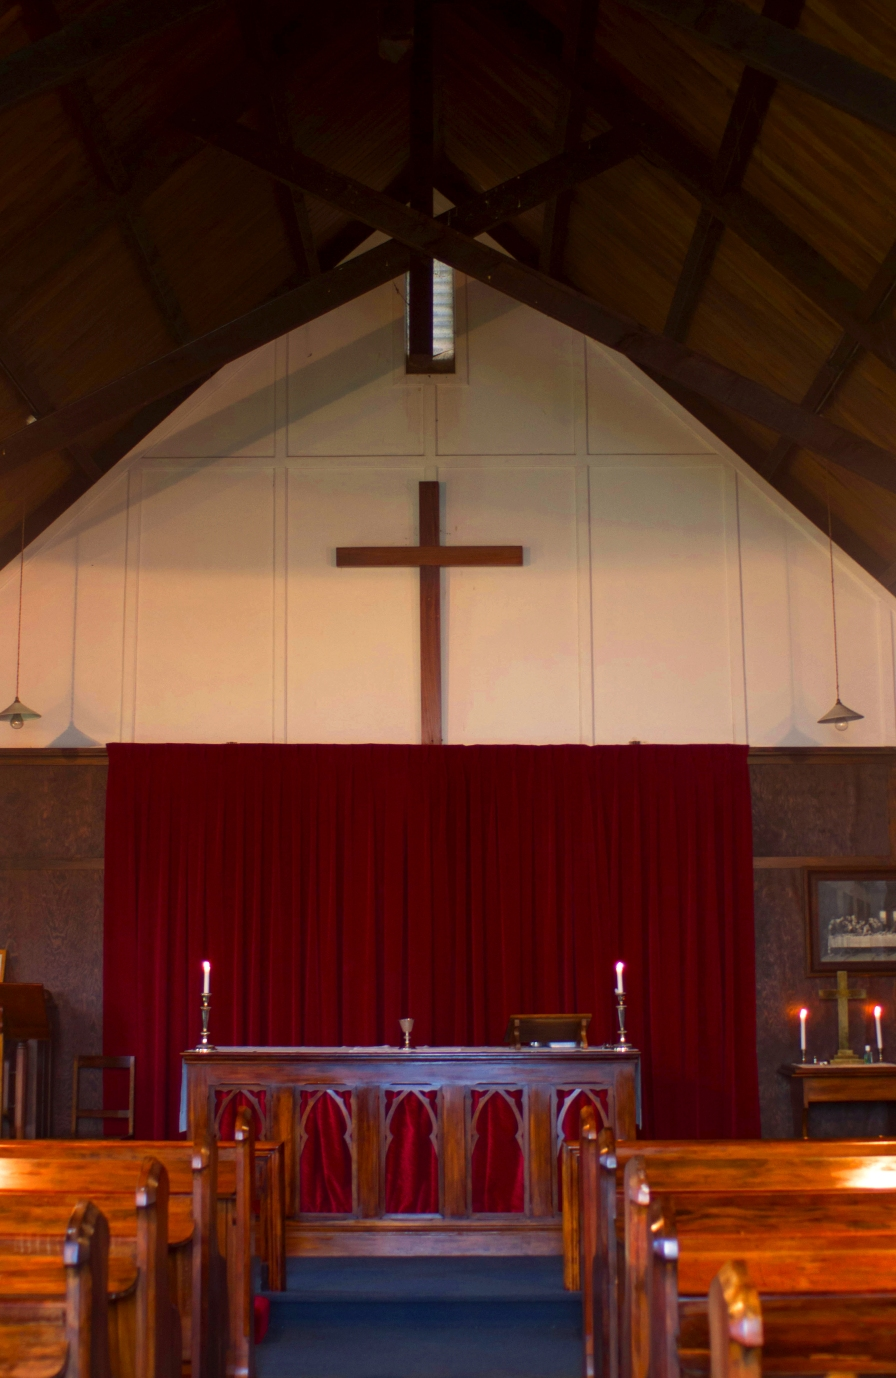 St David's interior - looking toward altar